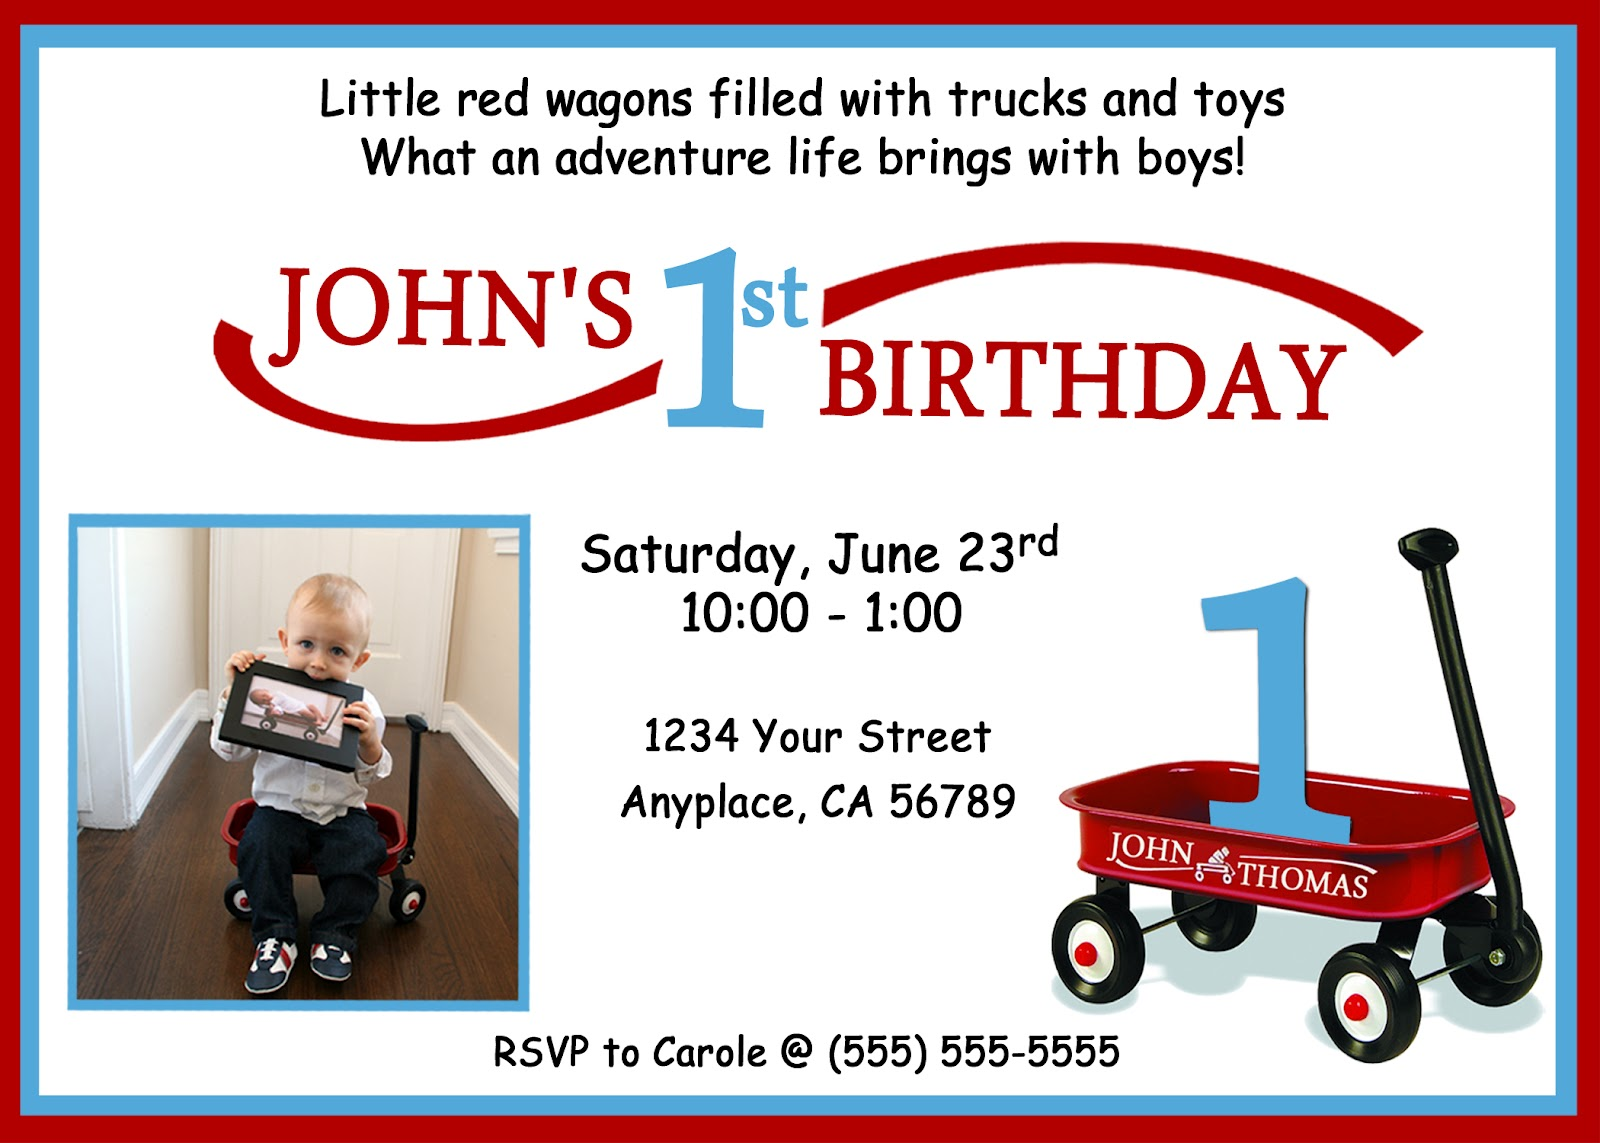 Invite And Delight: Red Wagon First Birthday